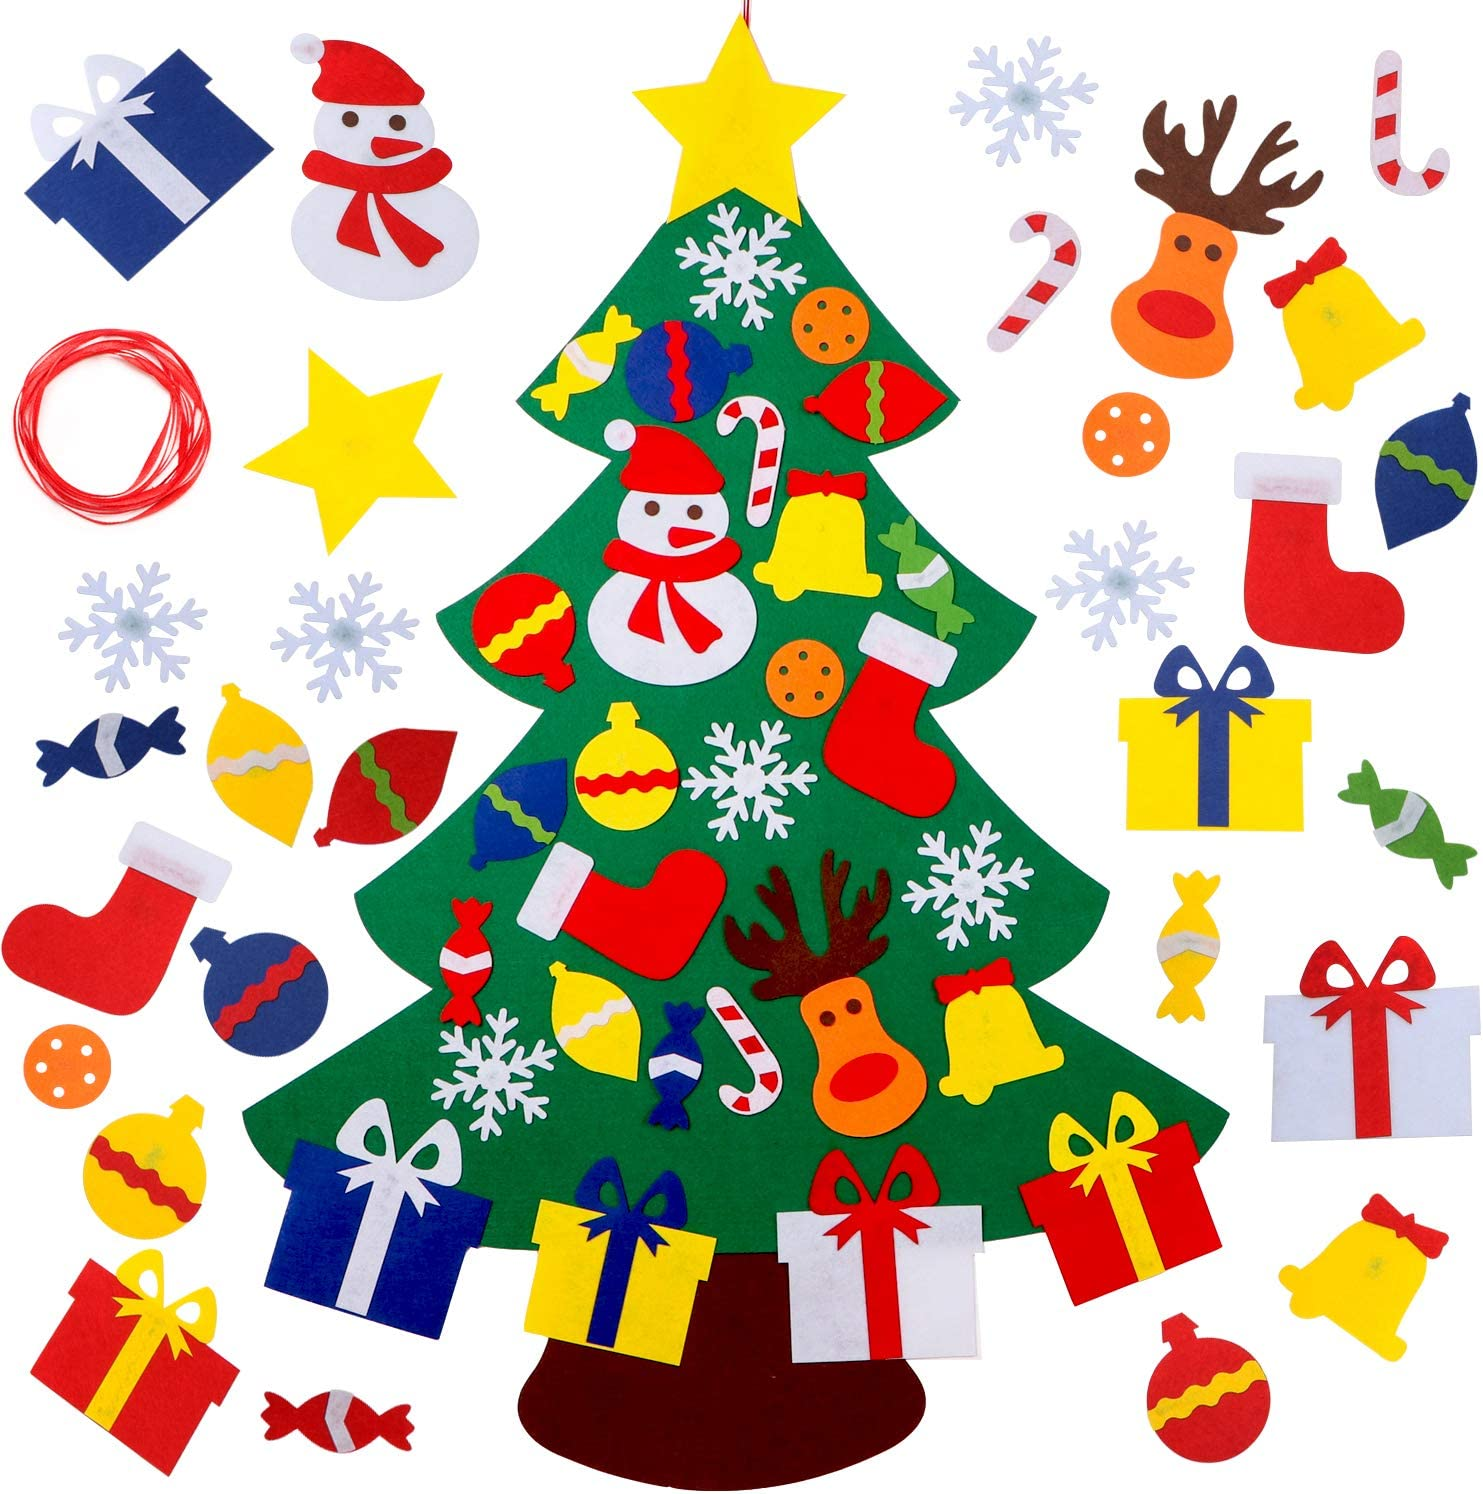 YEAHBEER Felt Christmas Tree for Kids,3.2FT DIY Christmas Tree with 30 Detachable Christmas Ornaments,Xmas Gifts, New Year Door Wall Hanging Decorations